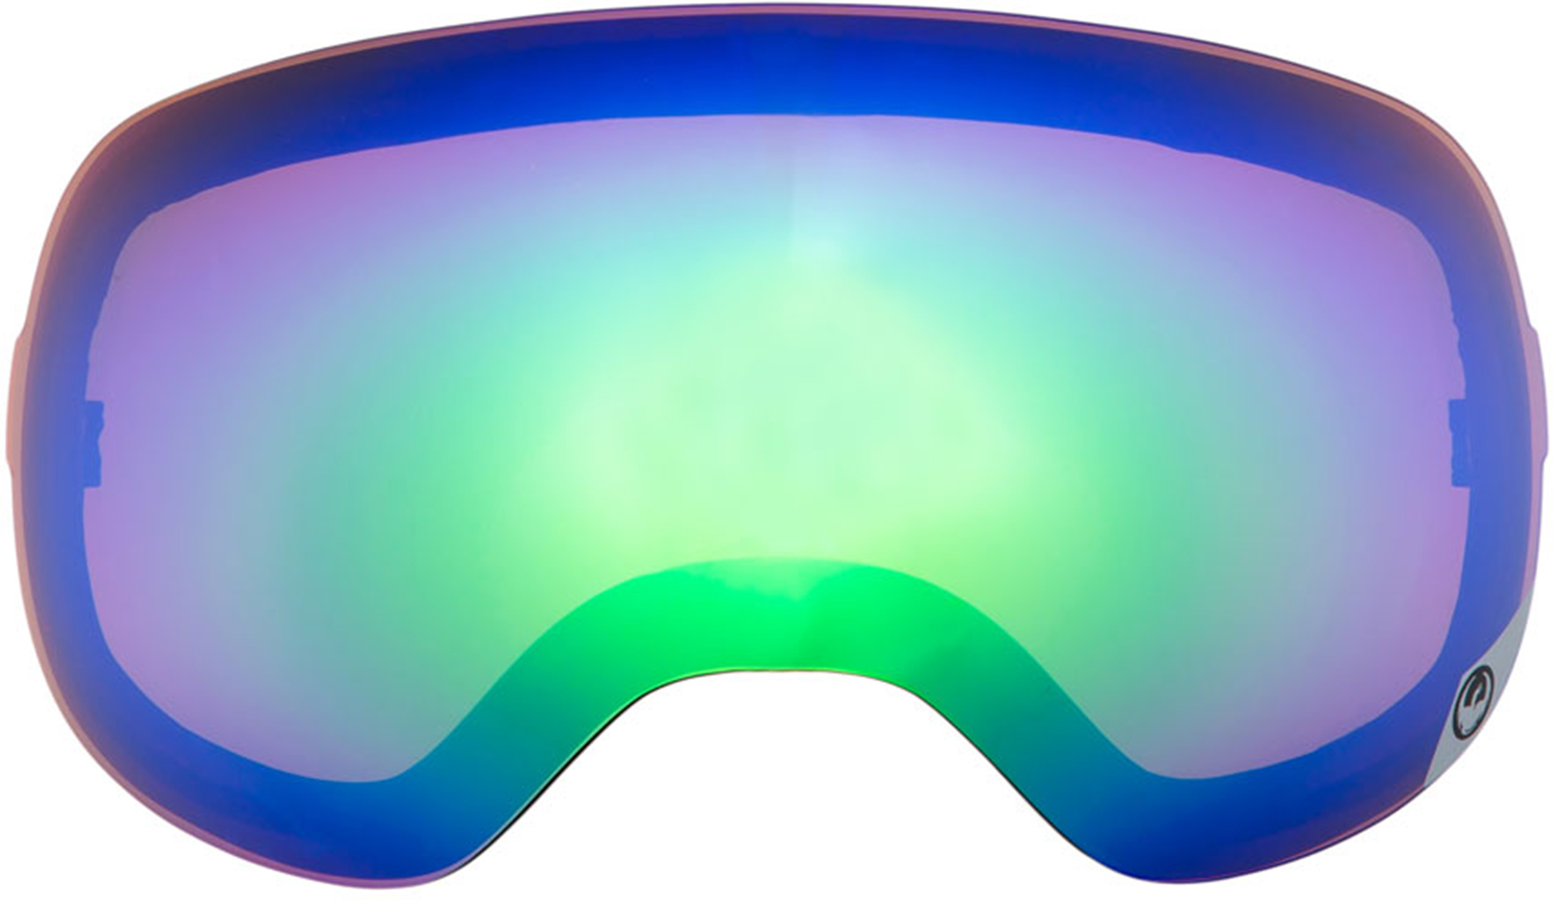 Dragon D3 Snowboard/Ski Goggles Spare Lens, One Size, Green Ionized